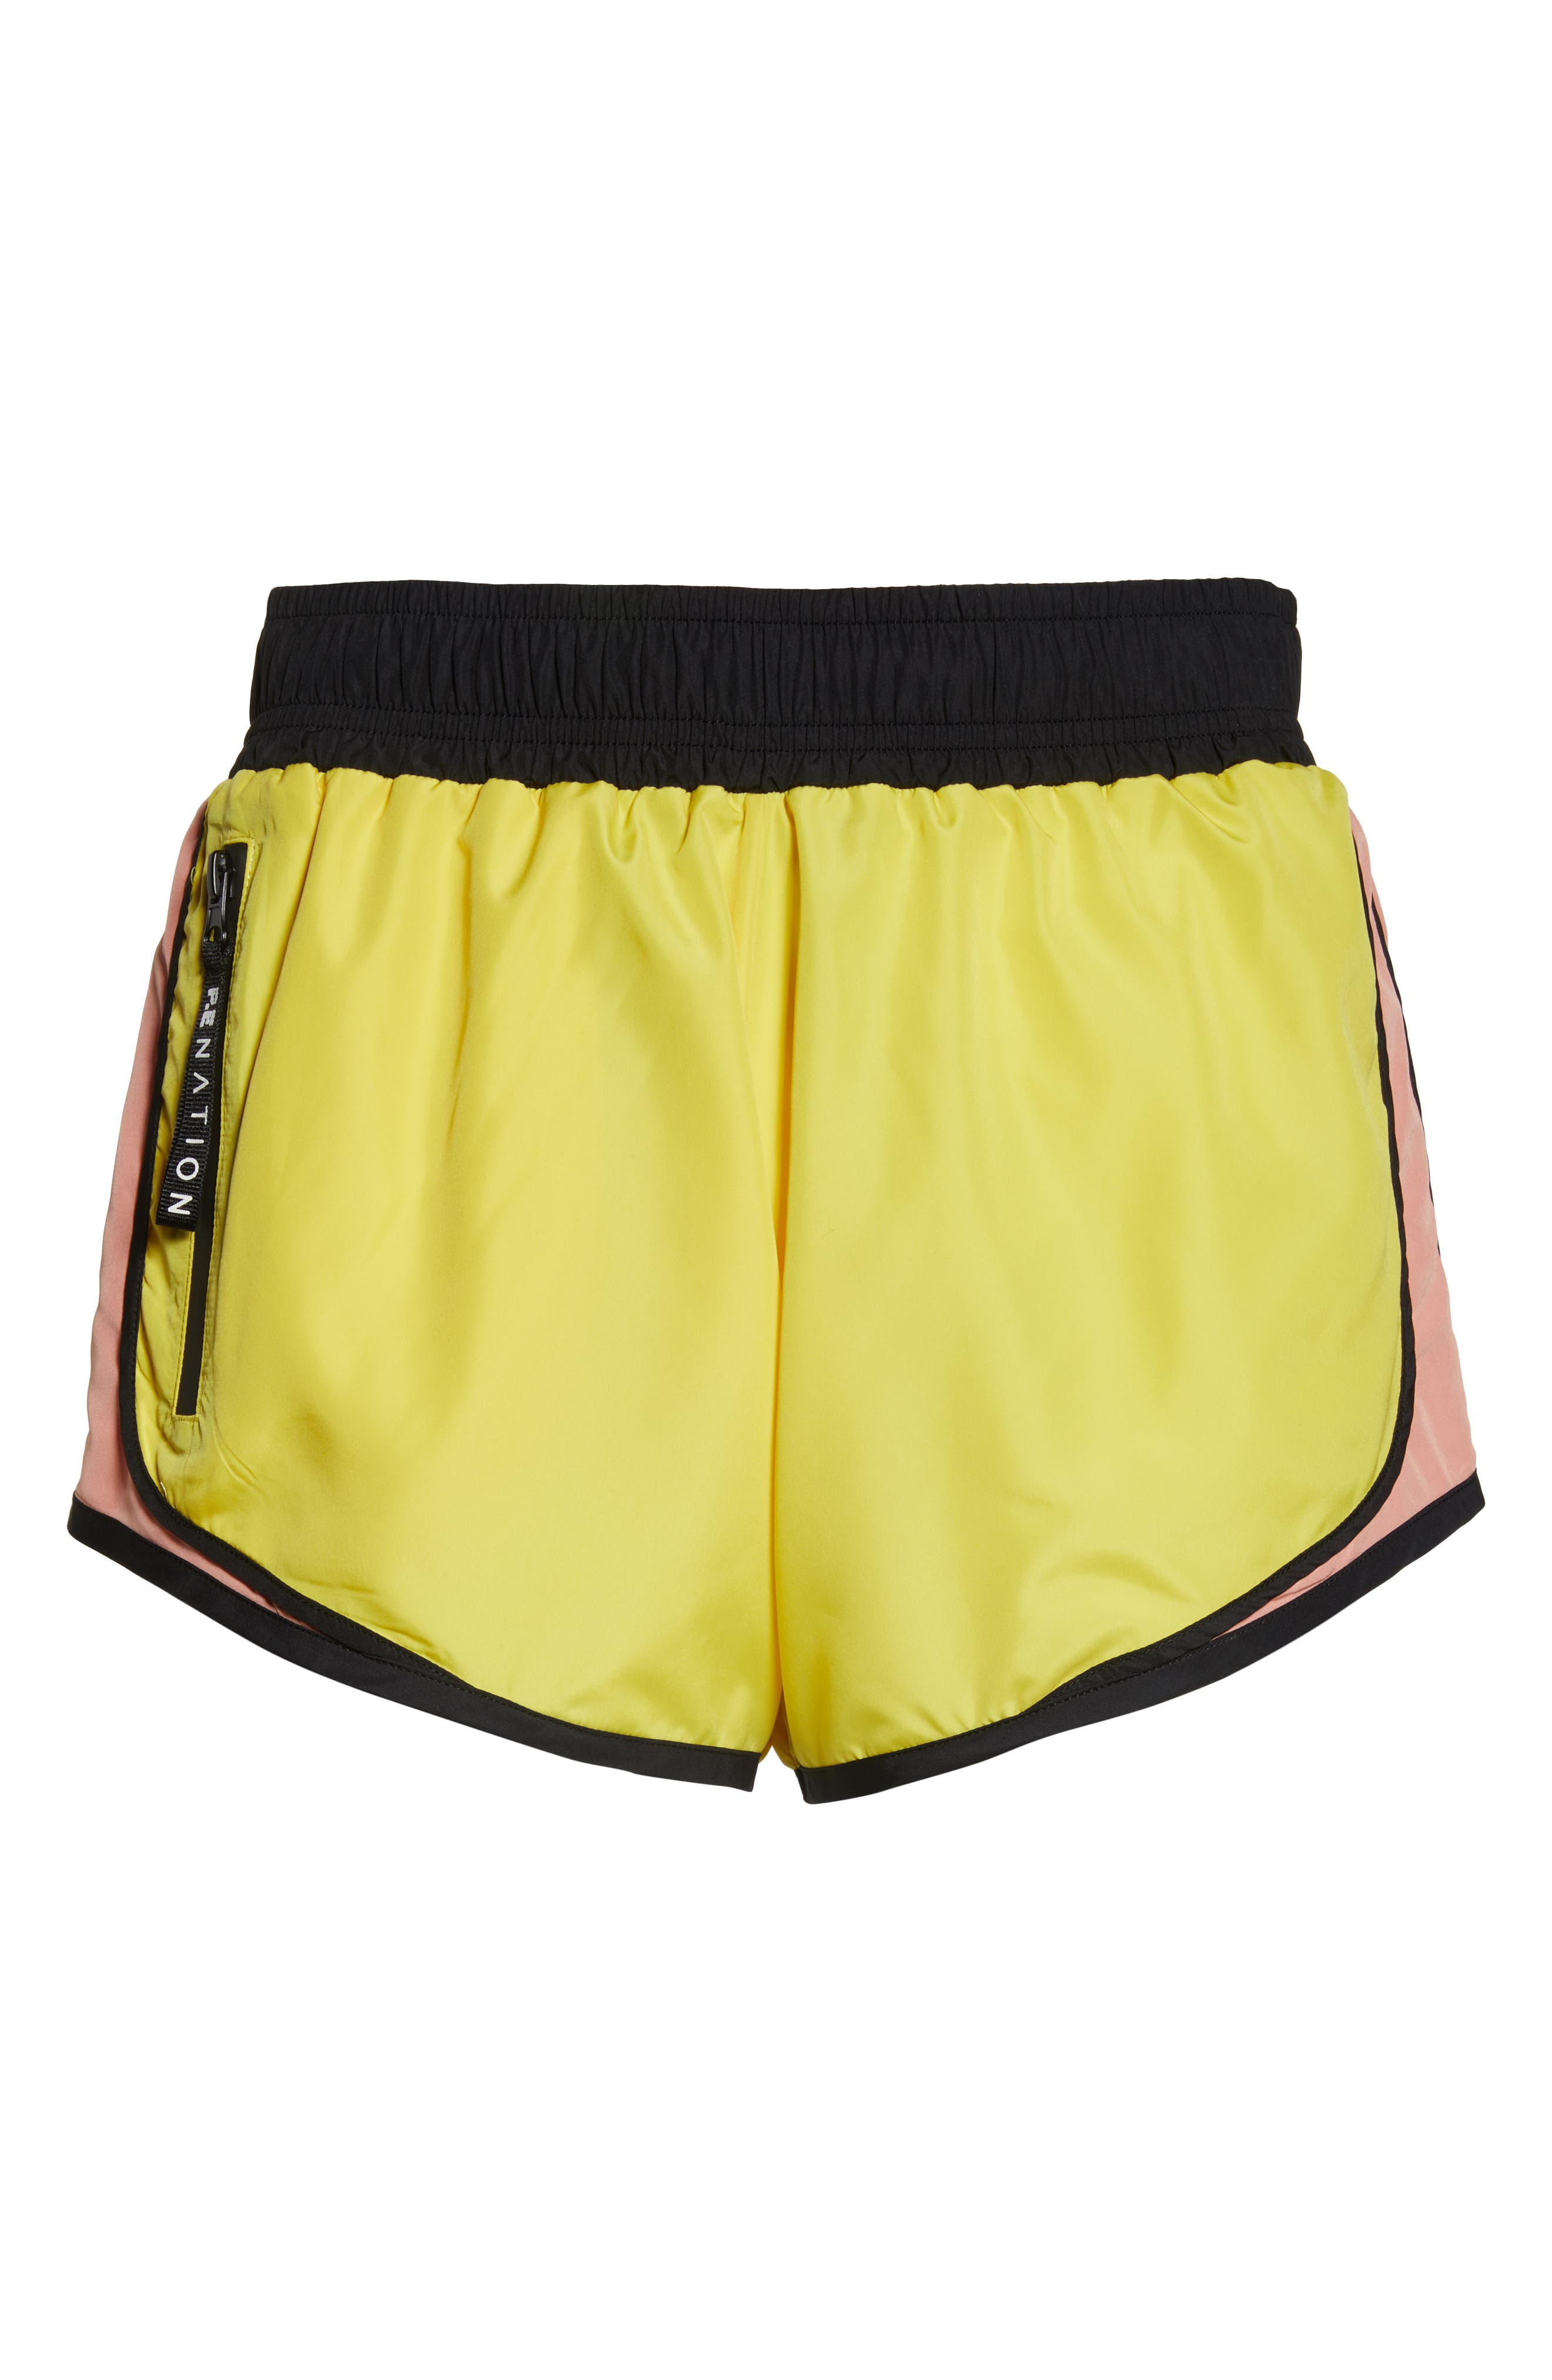 Sprint Vision Shorts,                             Alternate thumbnail 7, color,                             YELLOW